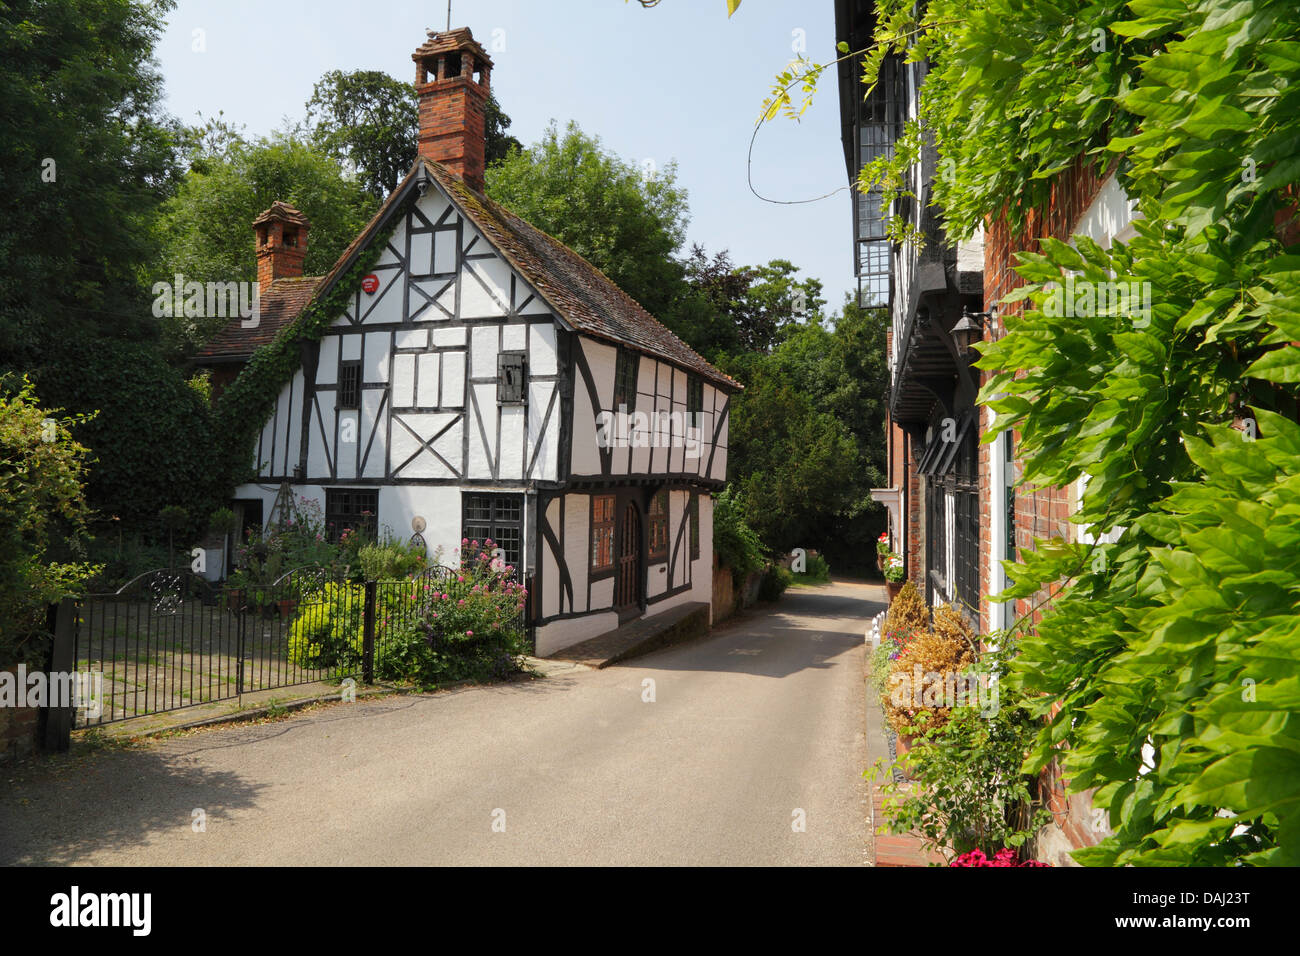 Chilham village in Kent. Picturesque medieval half timbered cottage. A popular tourist destination in South East - Stock Image